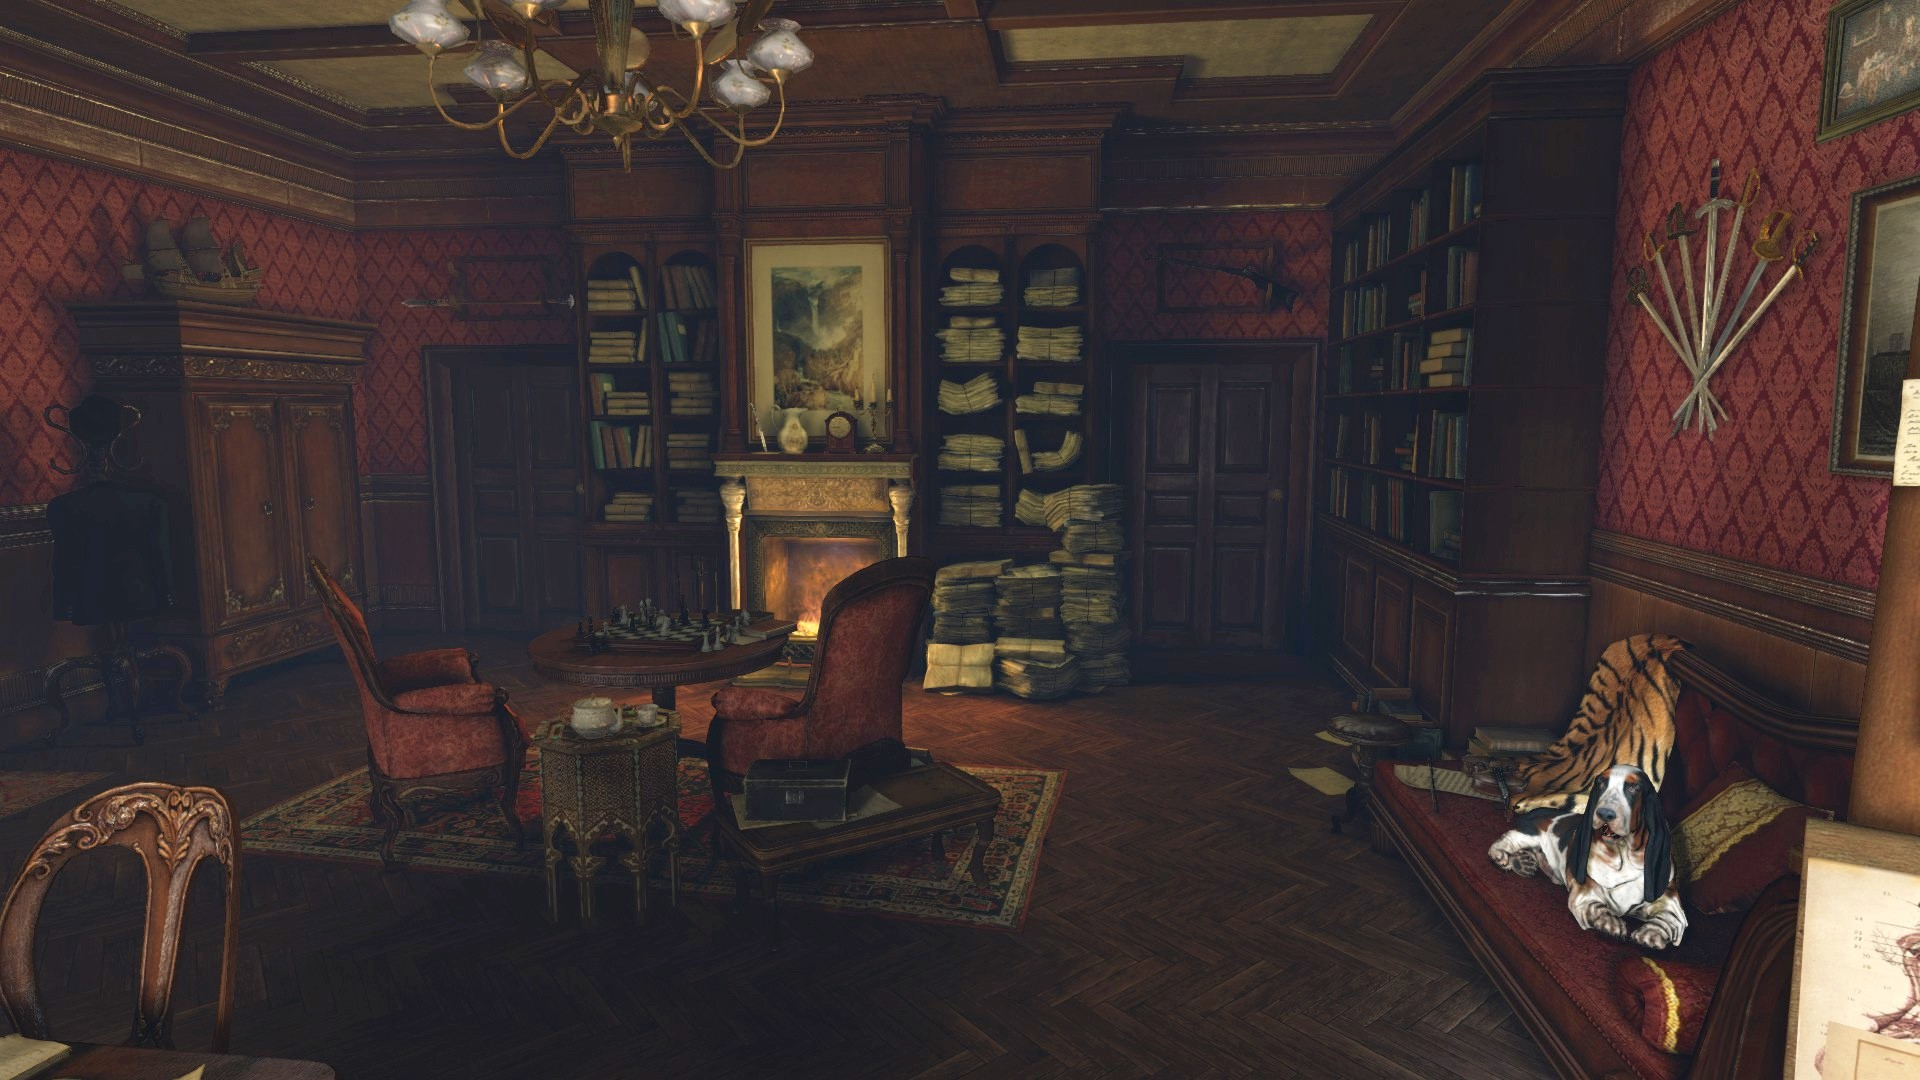 Action & Adventure, adventure, Atmospheric, Crime, Detective, Focus Home Interactive, Frogwares, Mystery, PS4, PS4 Review, Puzzle, Rating 8/10, Sherlock Holmes, Sherlock Holmes: Crimes & Punishments, Sherlock Holmes: Crimes & Punishments Review